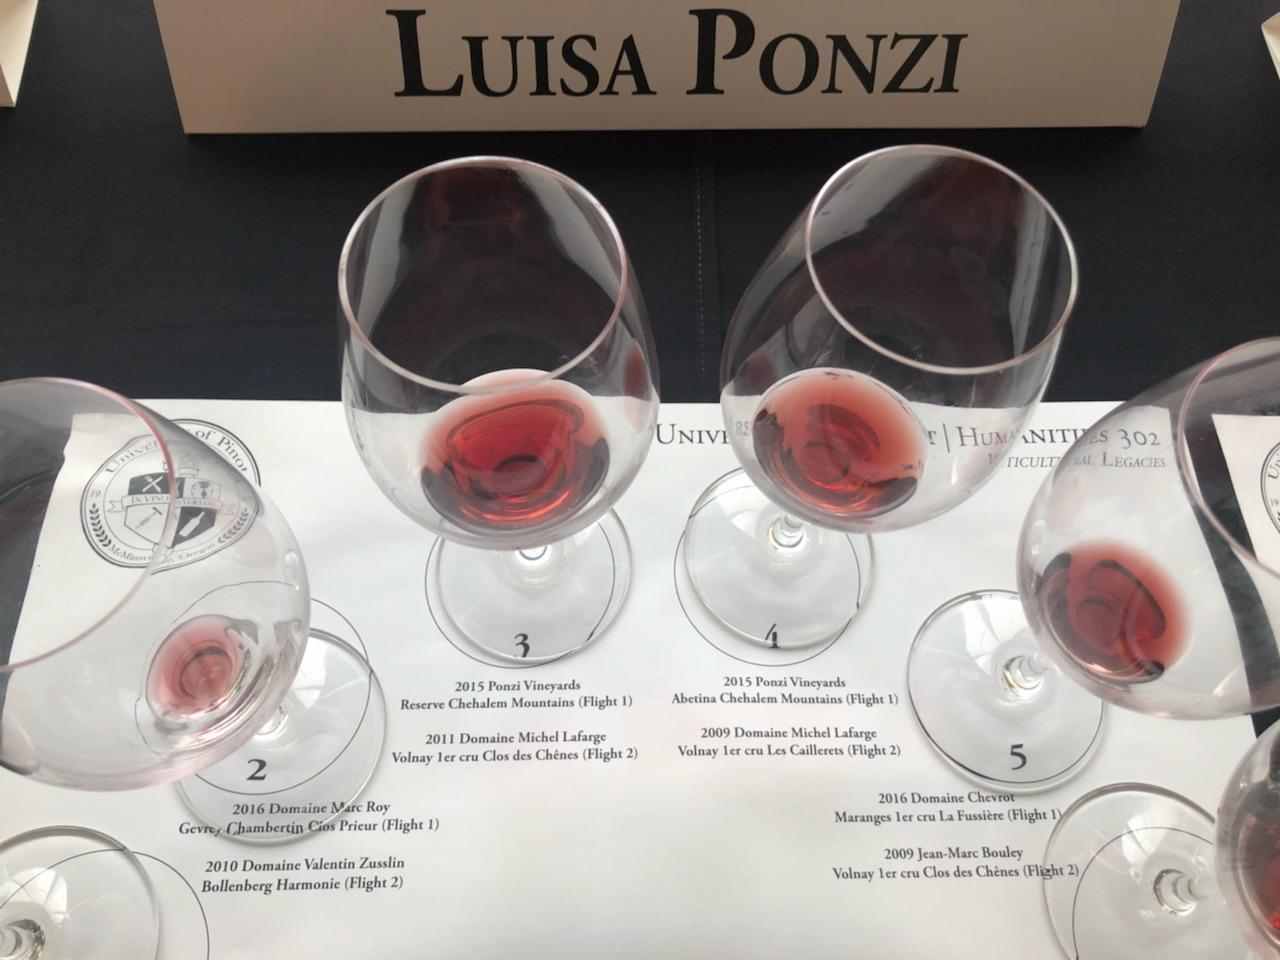 Ponzi Vineyards in company with Burgundy's finest Pinot noir Producers